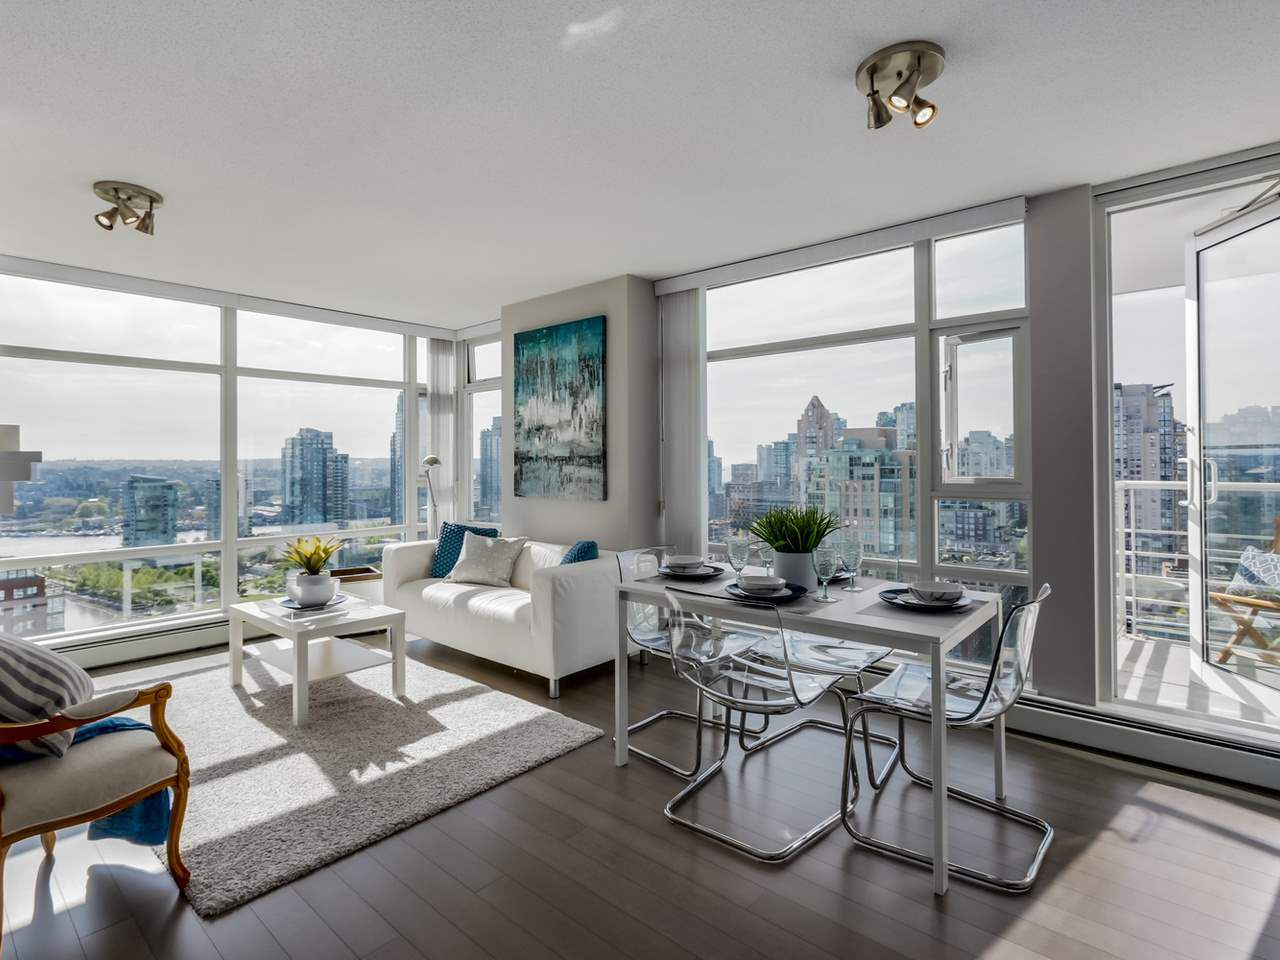 """Main Photo: 2906 1199 MARINASIDE Crescent in Vancouver: Yaletown Condo for sale in """"Aquarius One"""" (Vancouver West)  : MLS®# R2061056"""